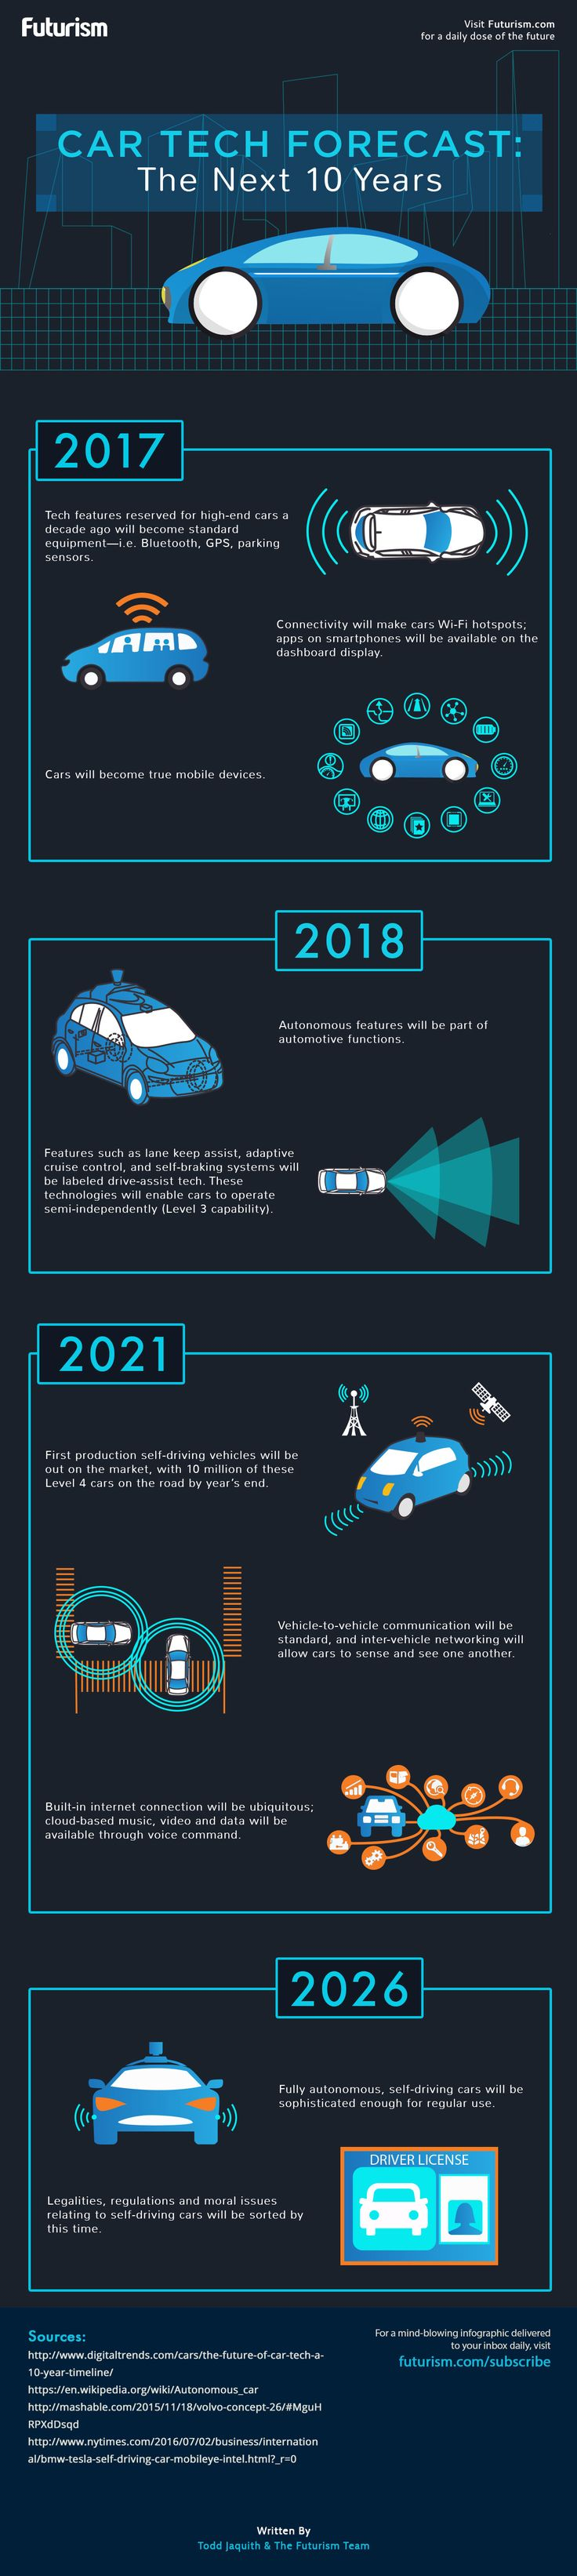 A look at some of the nifty technology that'll trick out our cars in the next decade…  http://futurism.com/images/car-tech-forecast-the-next-10-years/?utm_campaign=coschedule&utm_source=pinterest&utm_medium=Futurism&utm_content=Car%20Tech%20Forecast%3A%20The%20Next%2010%20Years%20%5BINFOGRAPHIC%5D